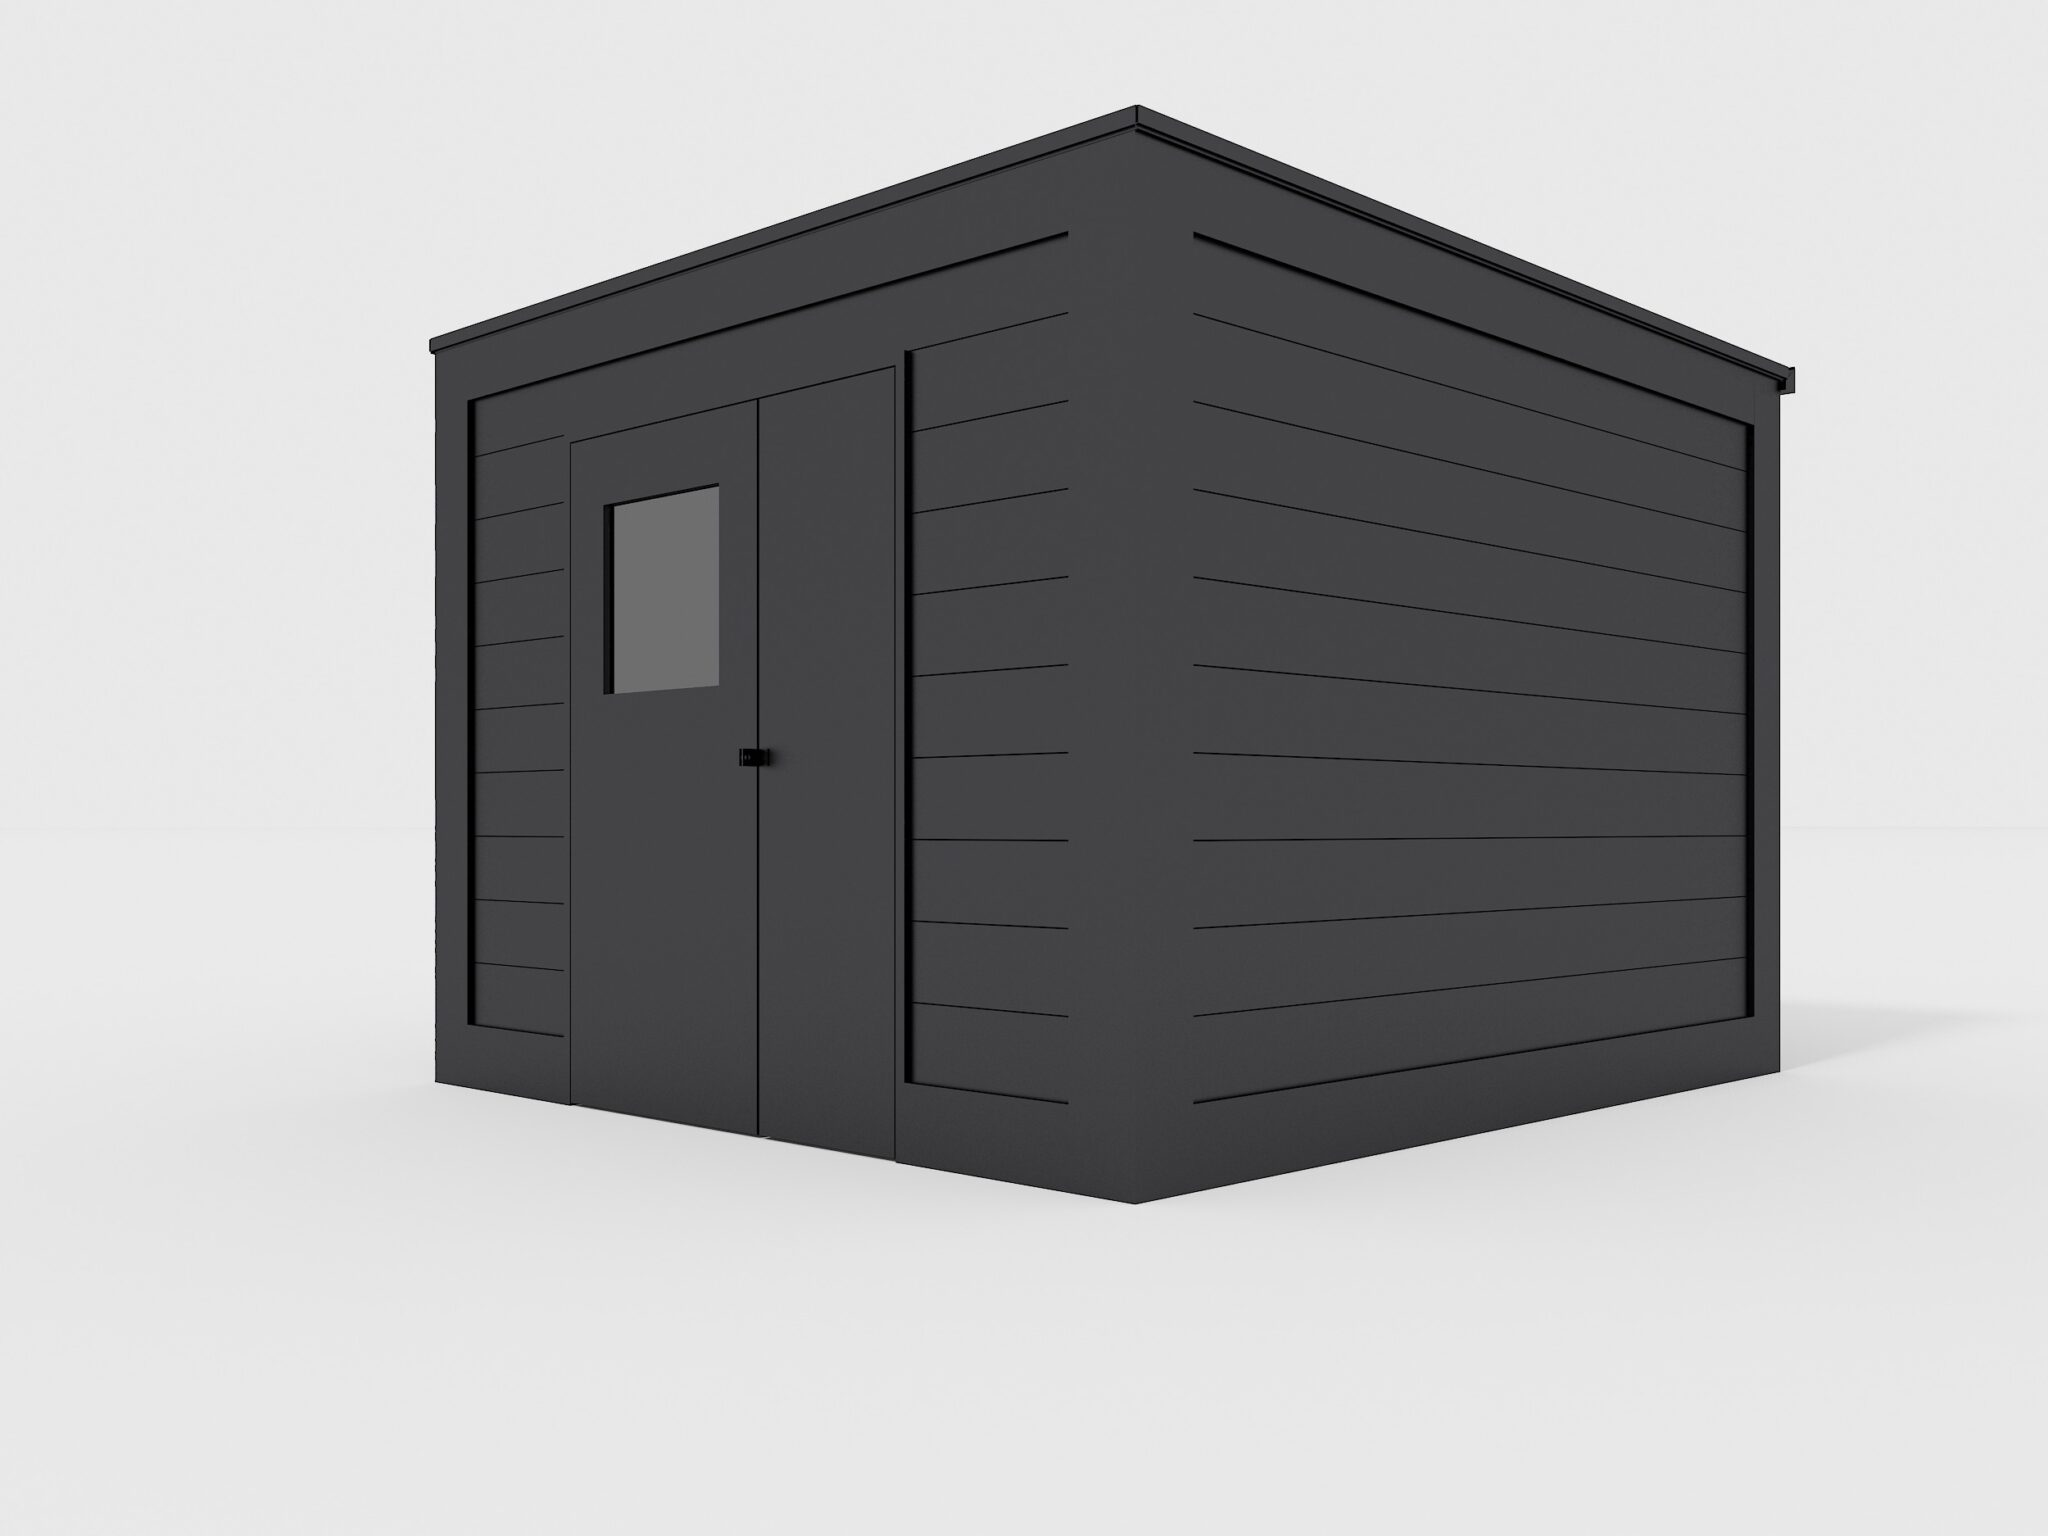 Cubic shed